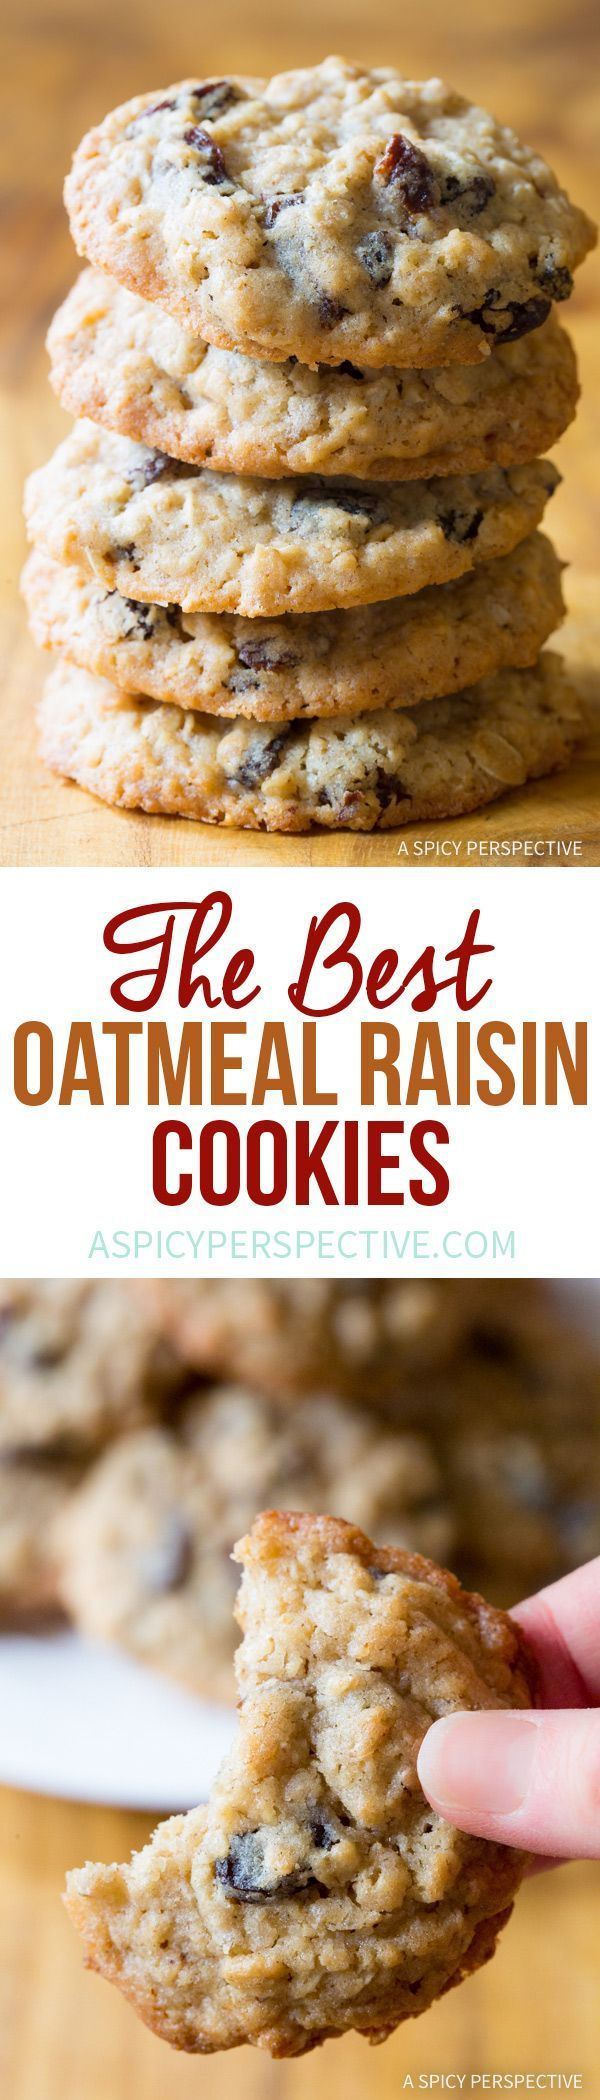 Literally The Best Oatmeal Raisin Cookies Ever!